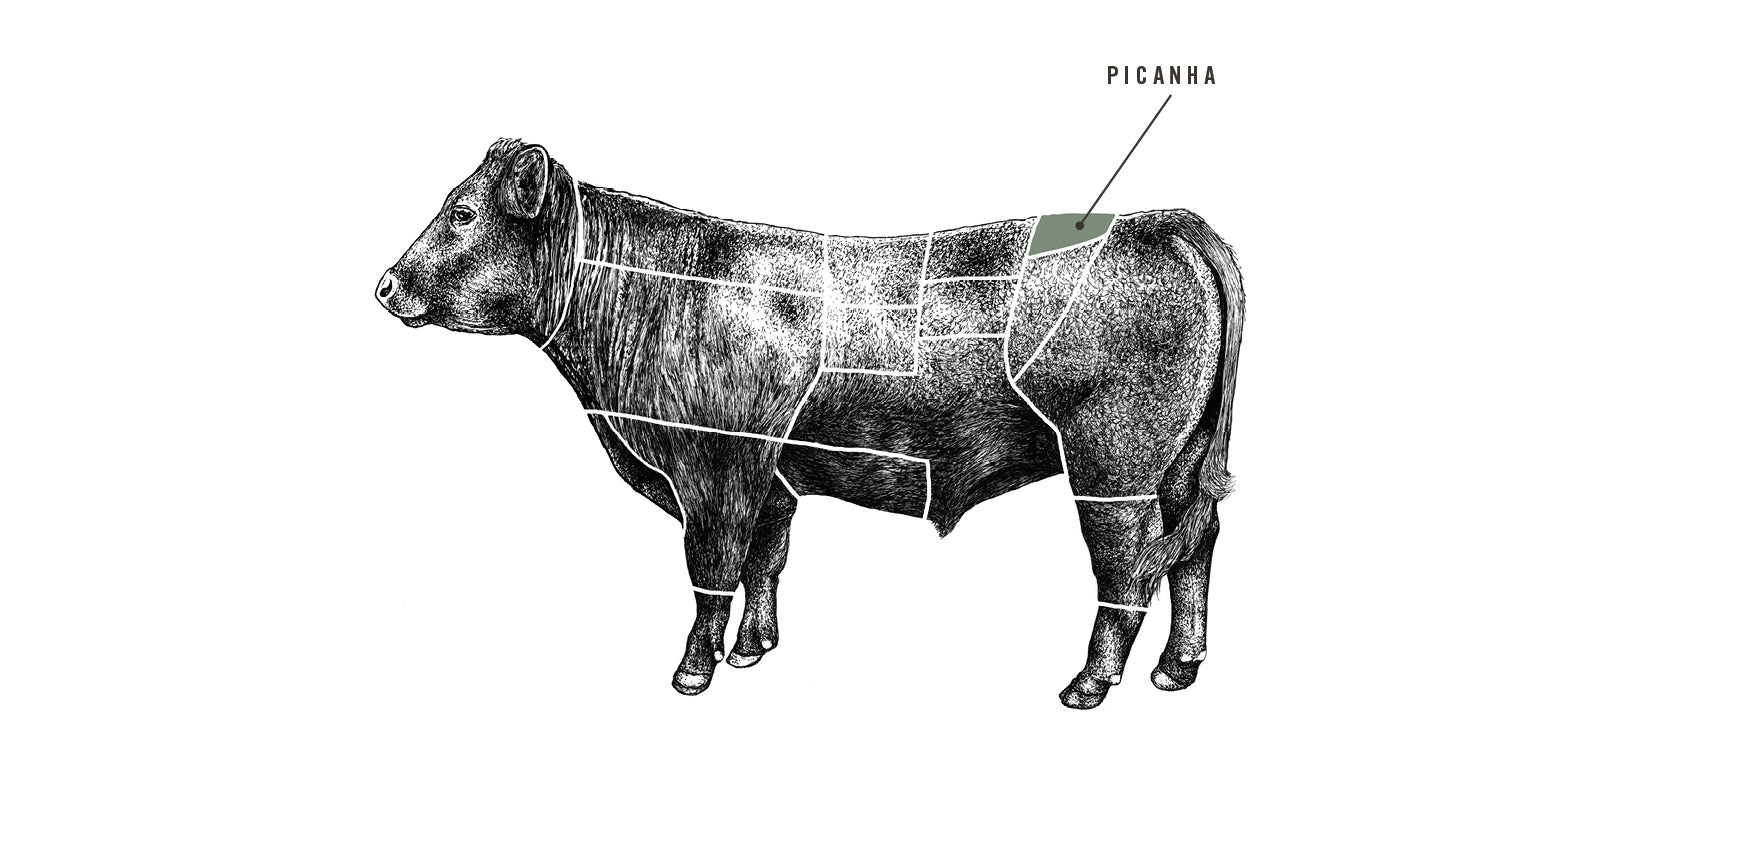 Grass Fed Beef Picanha meat cuts diagram